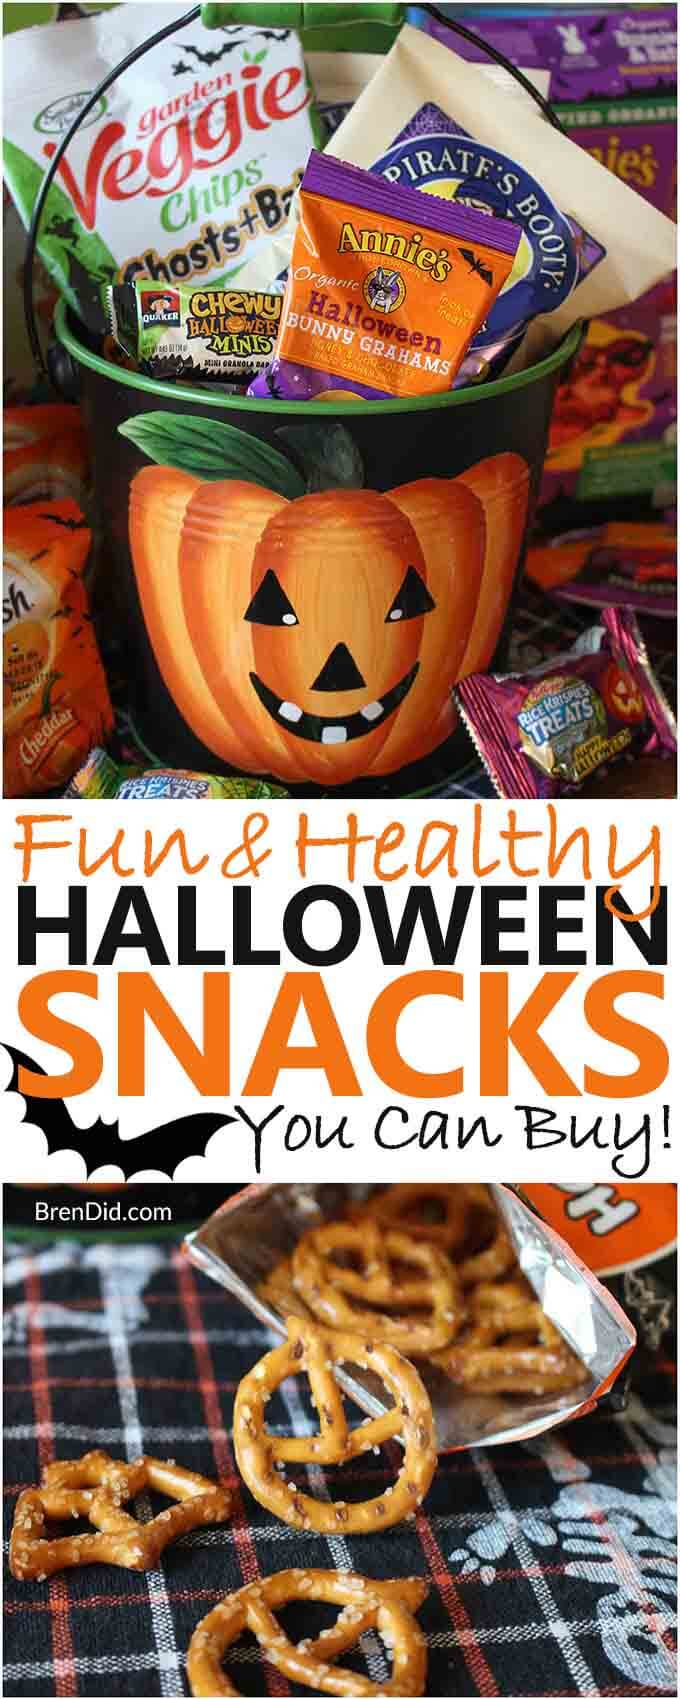 Need a packaged treat for a Halloween? Check out these healthy snacks to buy for your Halloween class party. Your kids will love the fun halloween treats for school … and you'll feel good about serving better-for-you options. #halloweentreats #healthyhalloweentreats #healthysnacksforkids #halloween #halloweensnacks #Brendid